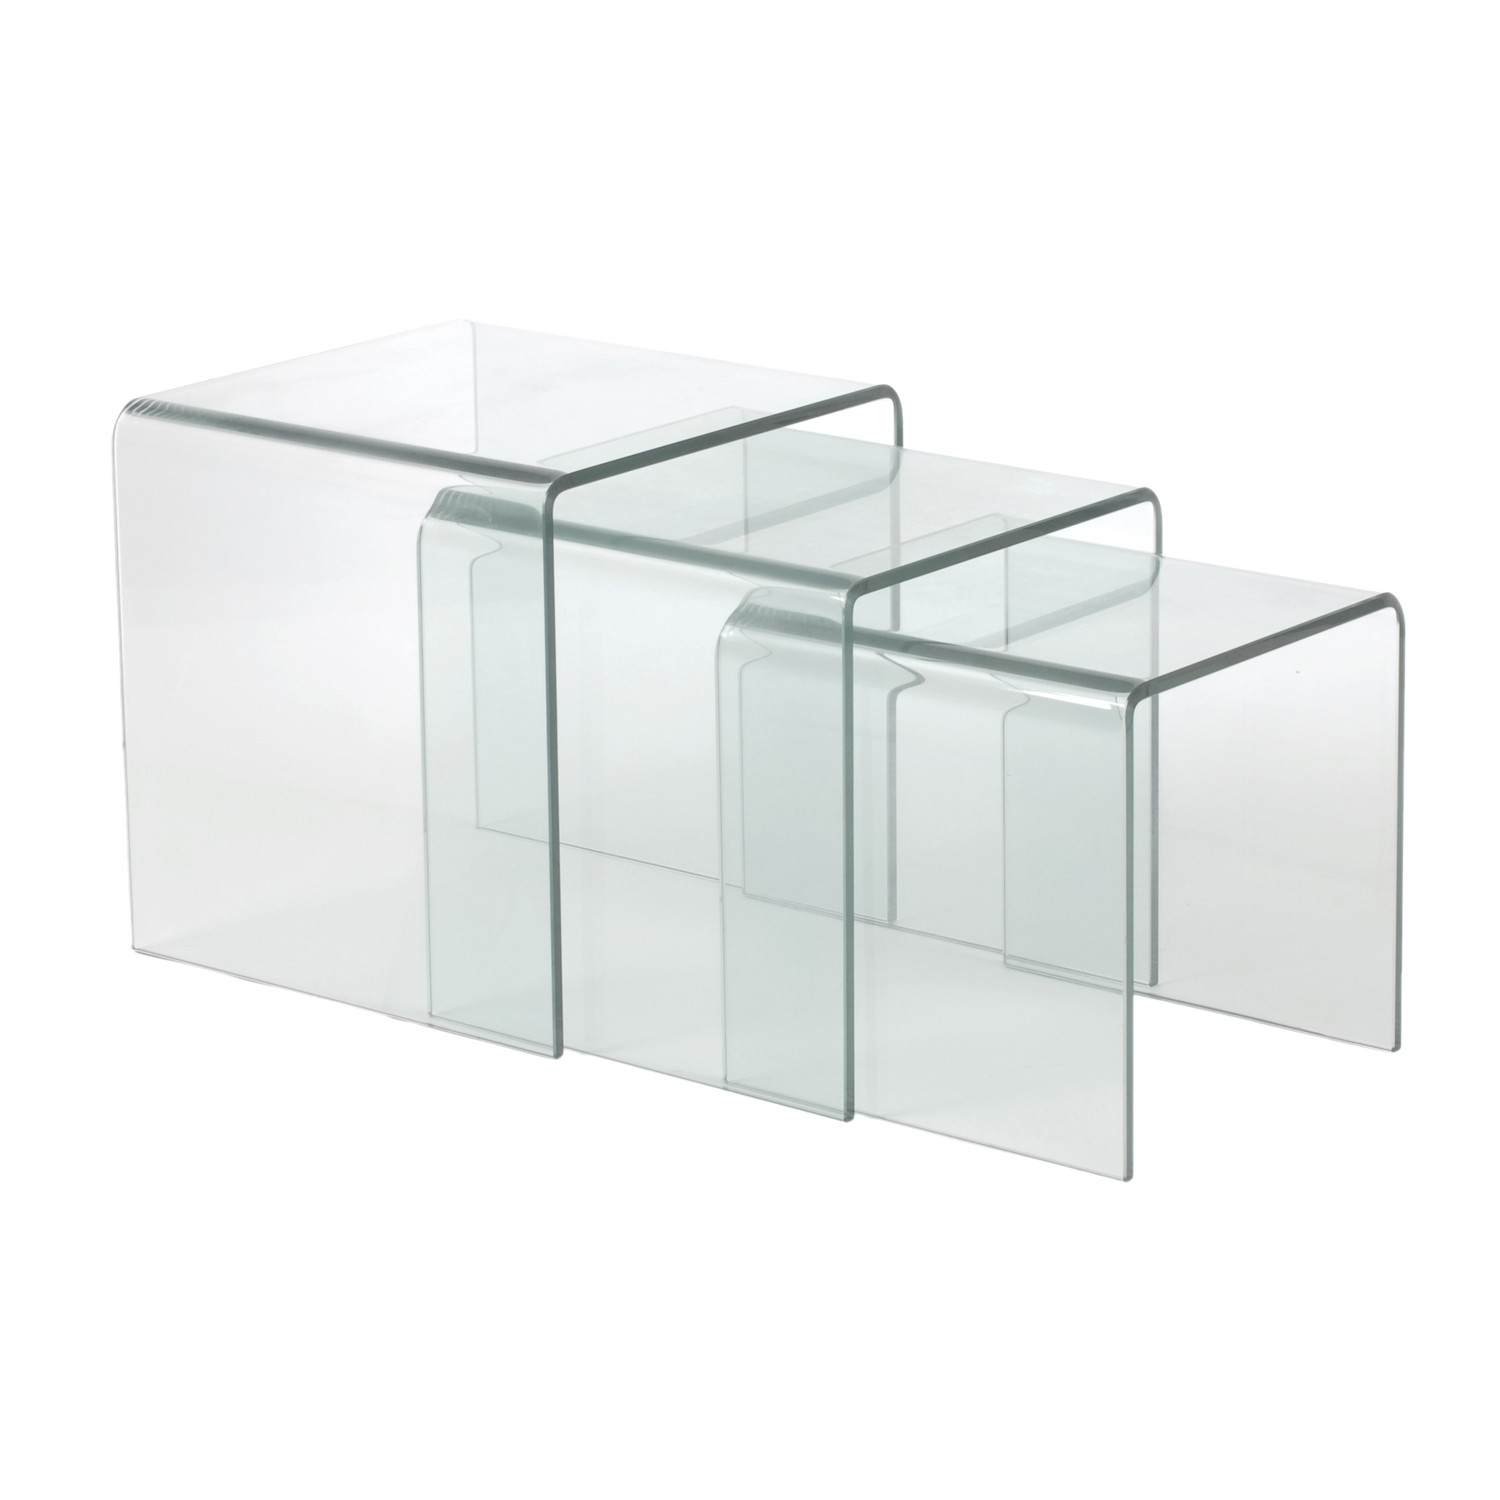 Bent Glass Nesting Tables // Set of 3  sc 1 st  Touch of Modern & Bent Glass Nesting Tables // Set of 3 - Affordably Modern - Touch of ...